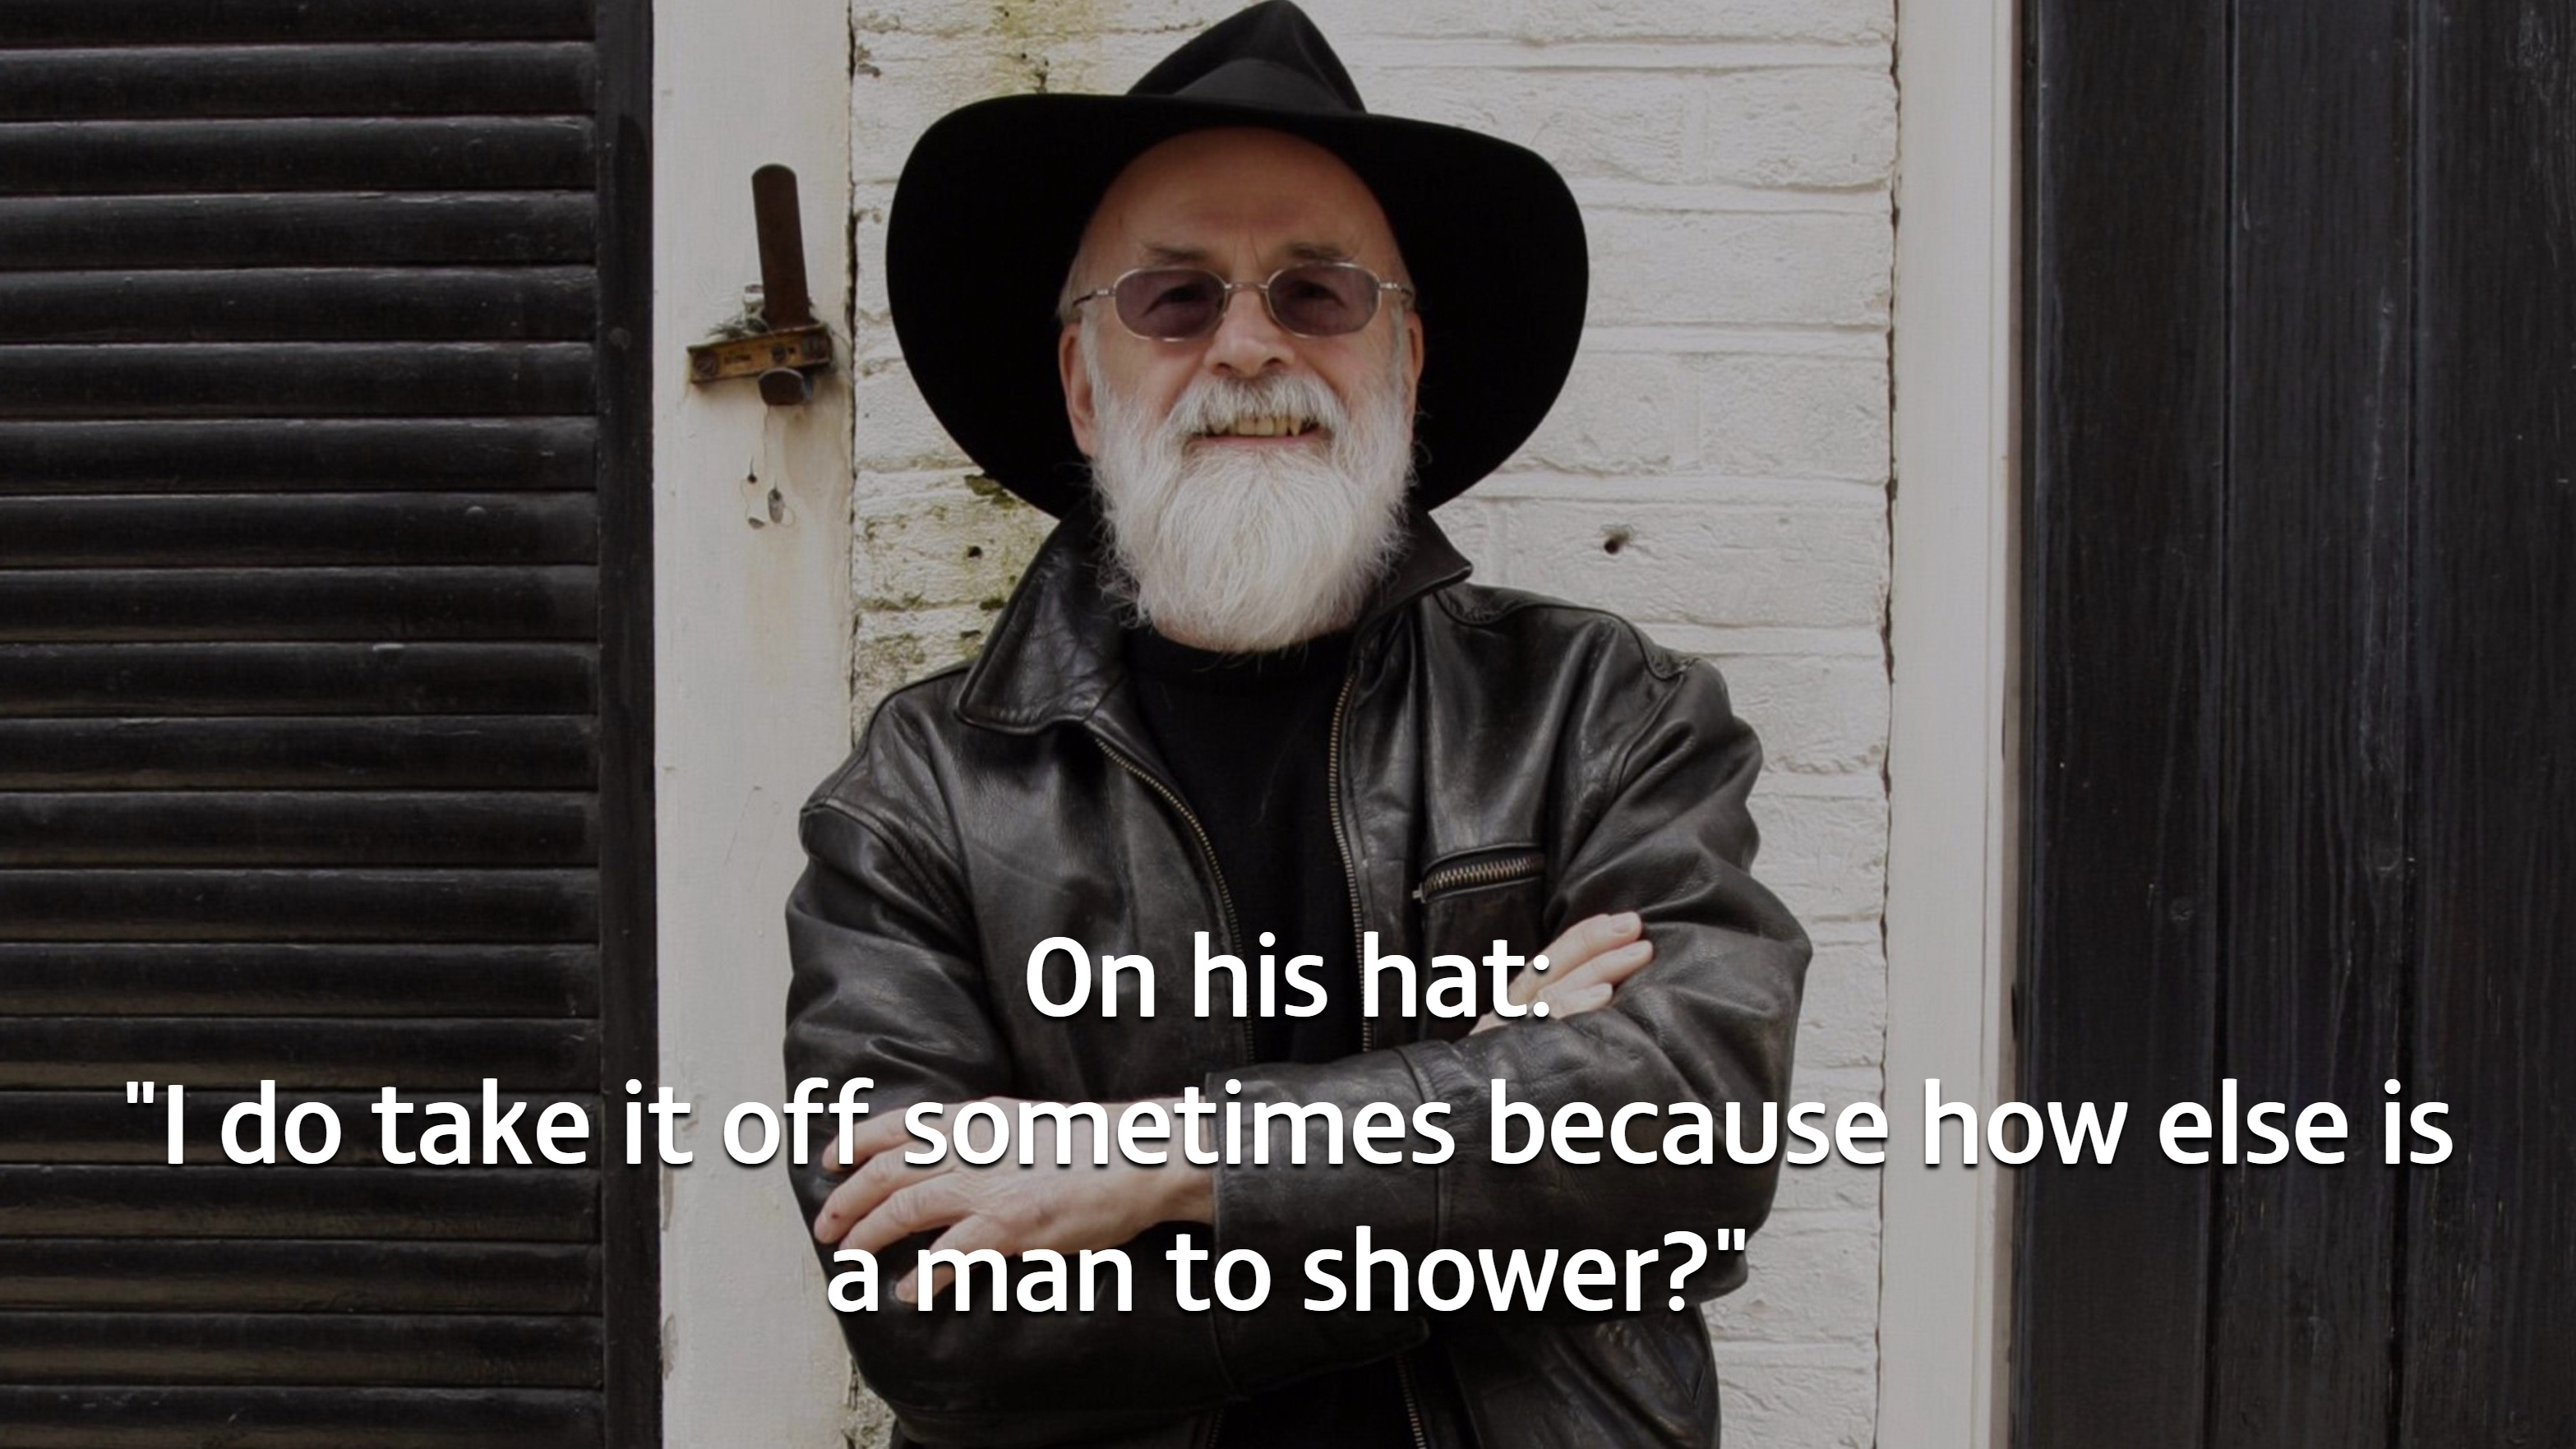 terry pratchett Terry pratchett, whose science-fantasy discworld novels are some of the best-selling works in english fiction around the world, died on march 12, 2015, aged 66 after a long battle with alzheimer's disease pratchett sold more than 85 million books worldwide and was full of wit and wisdom his.